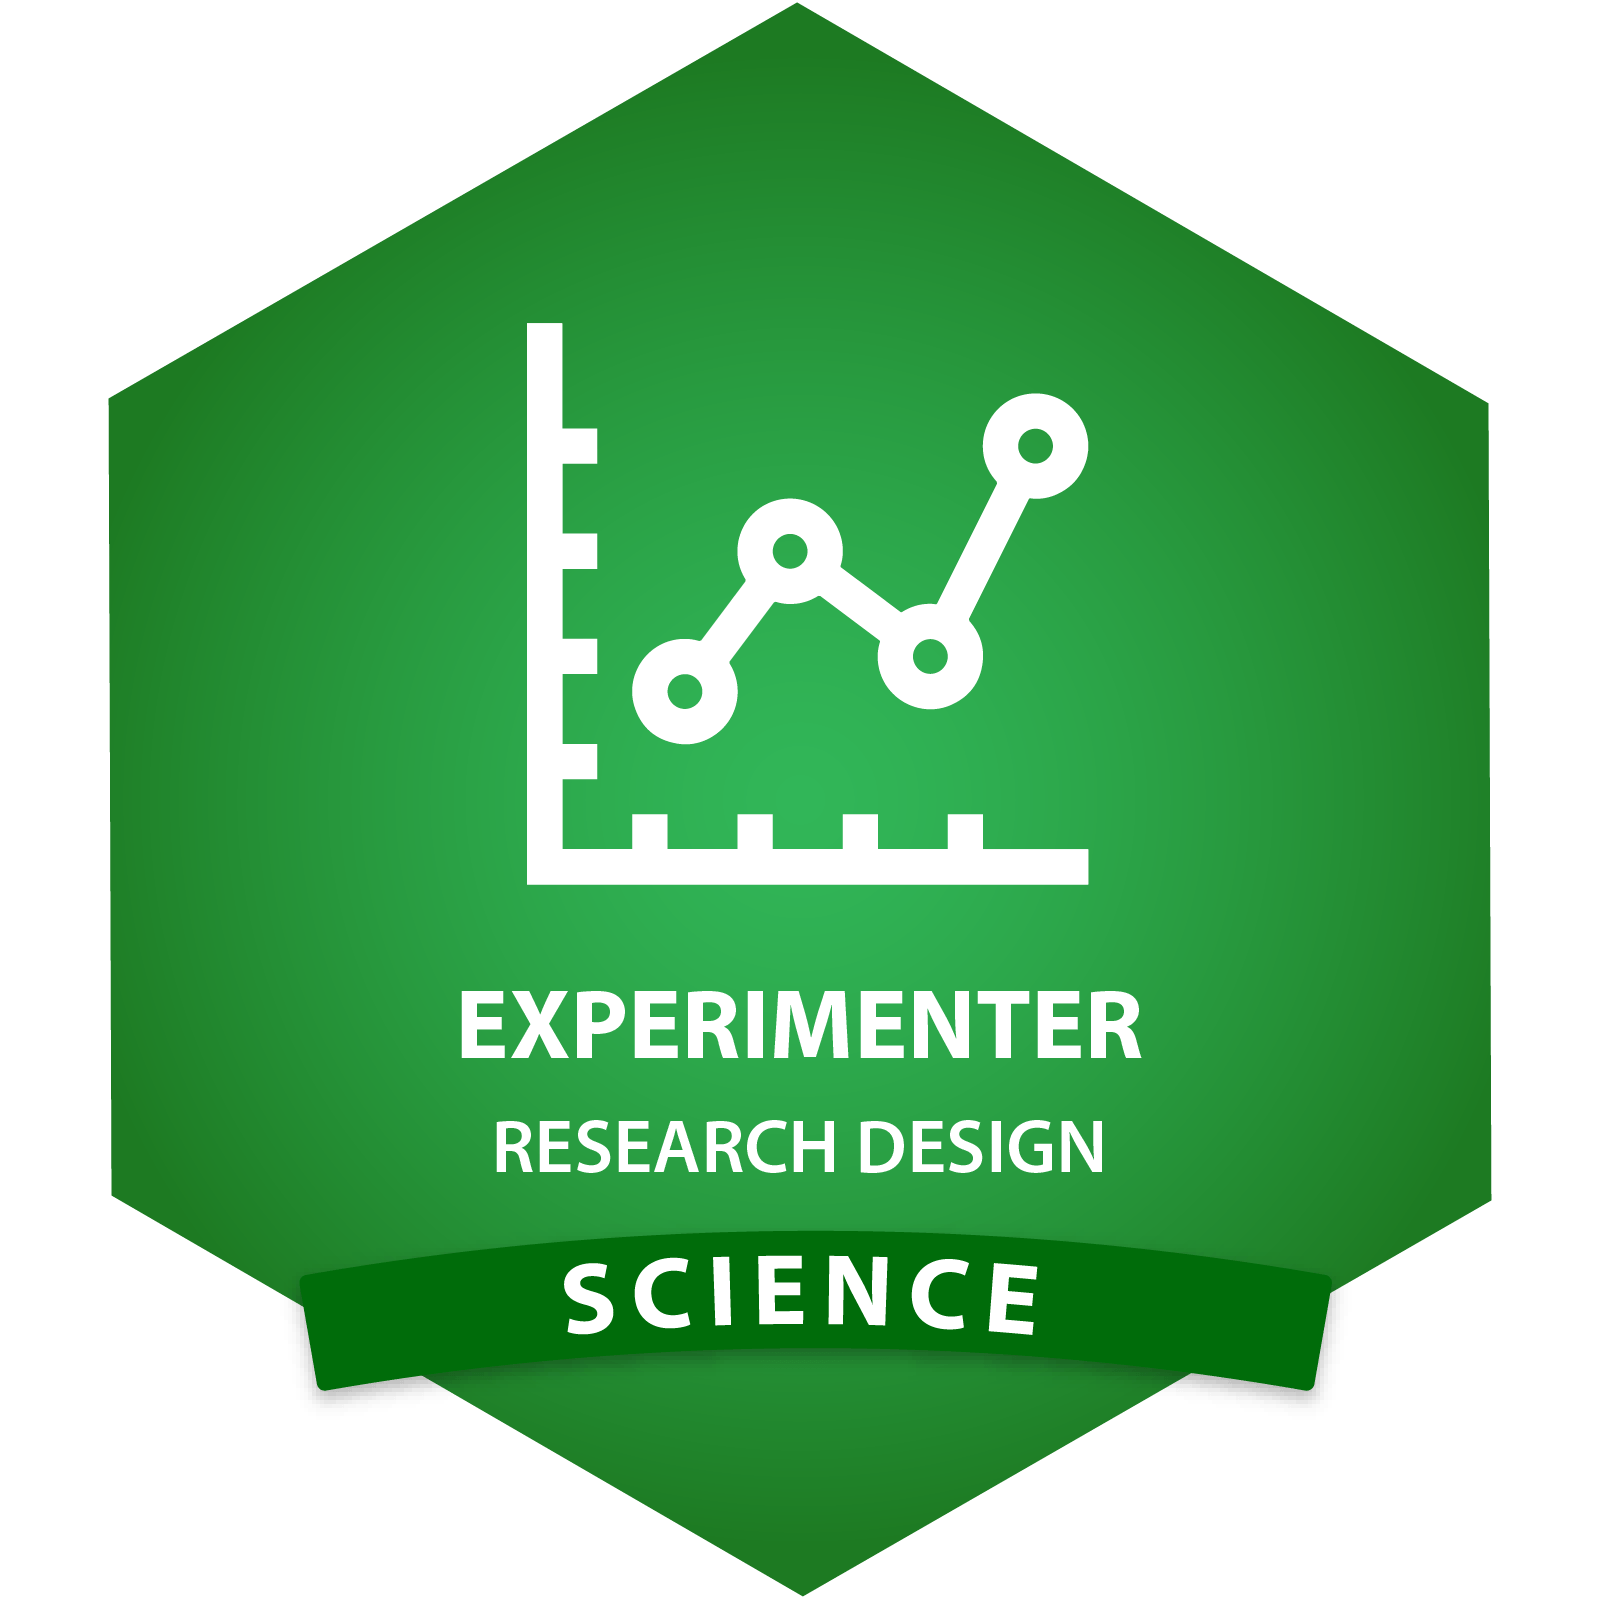 Science: Experimenter - Research Design@4x-8.png